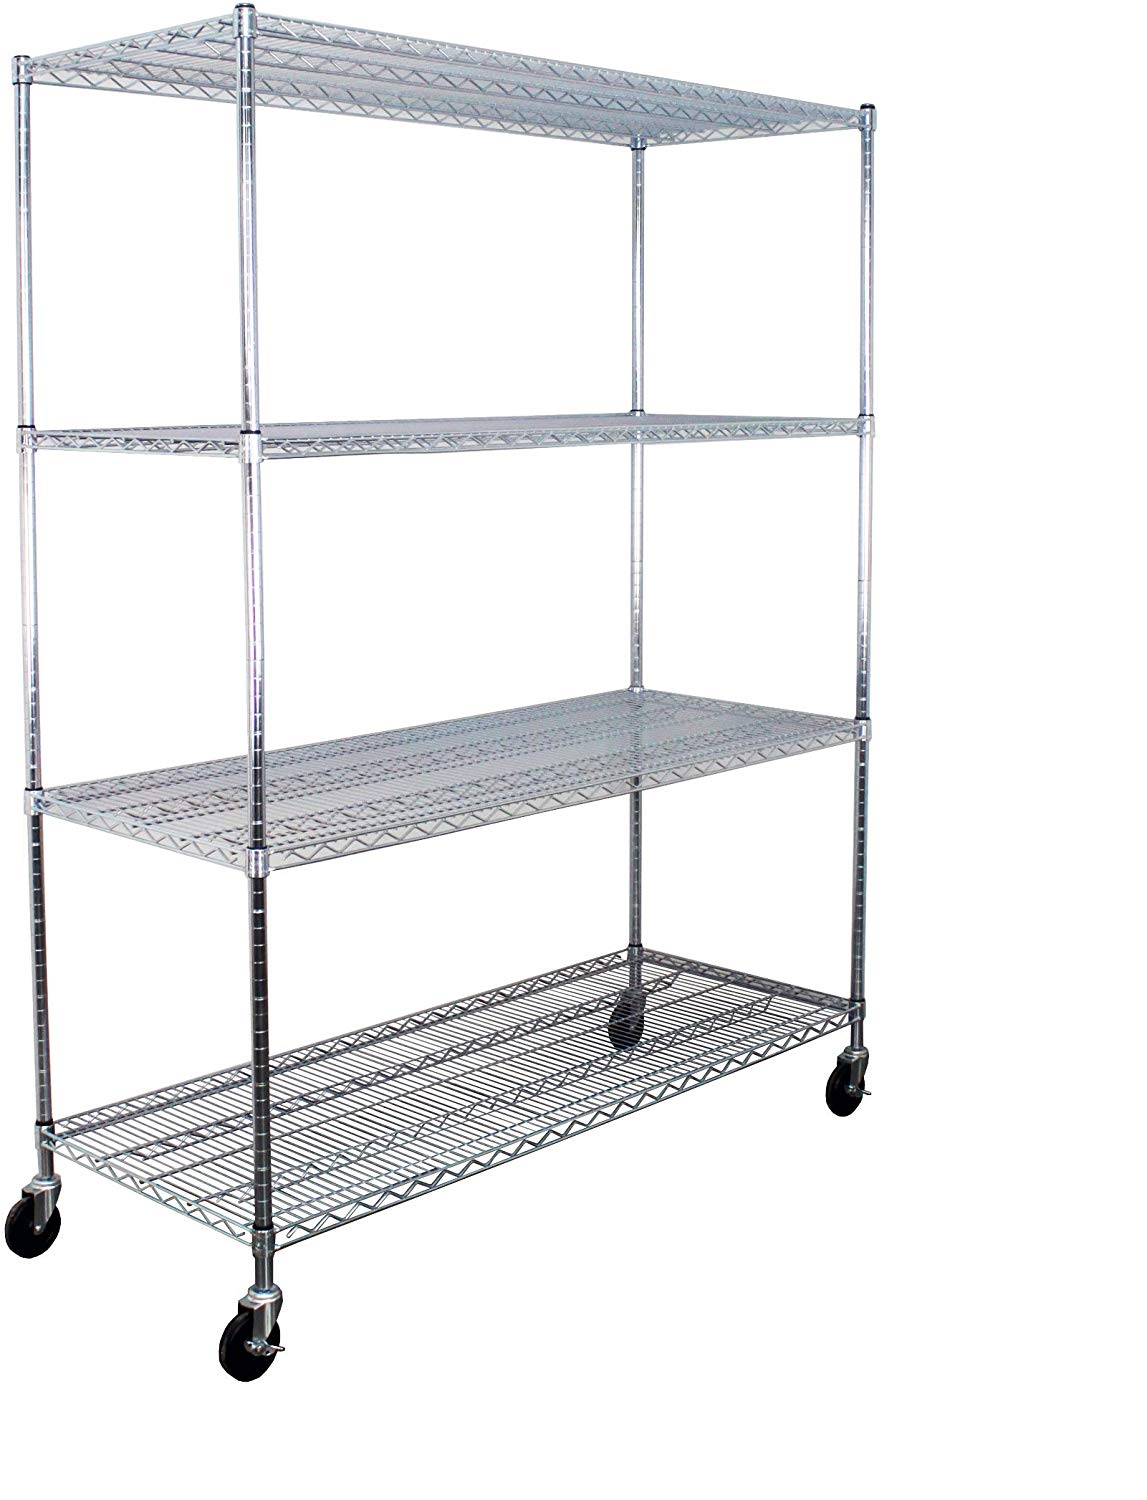 4 Shelf Steel Wire Storage Rack: 24D x 60W x 74H